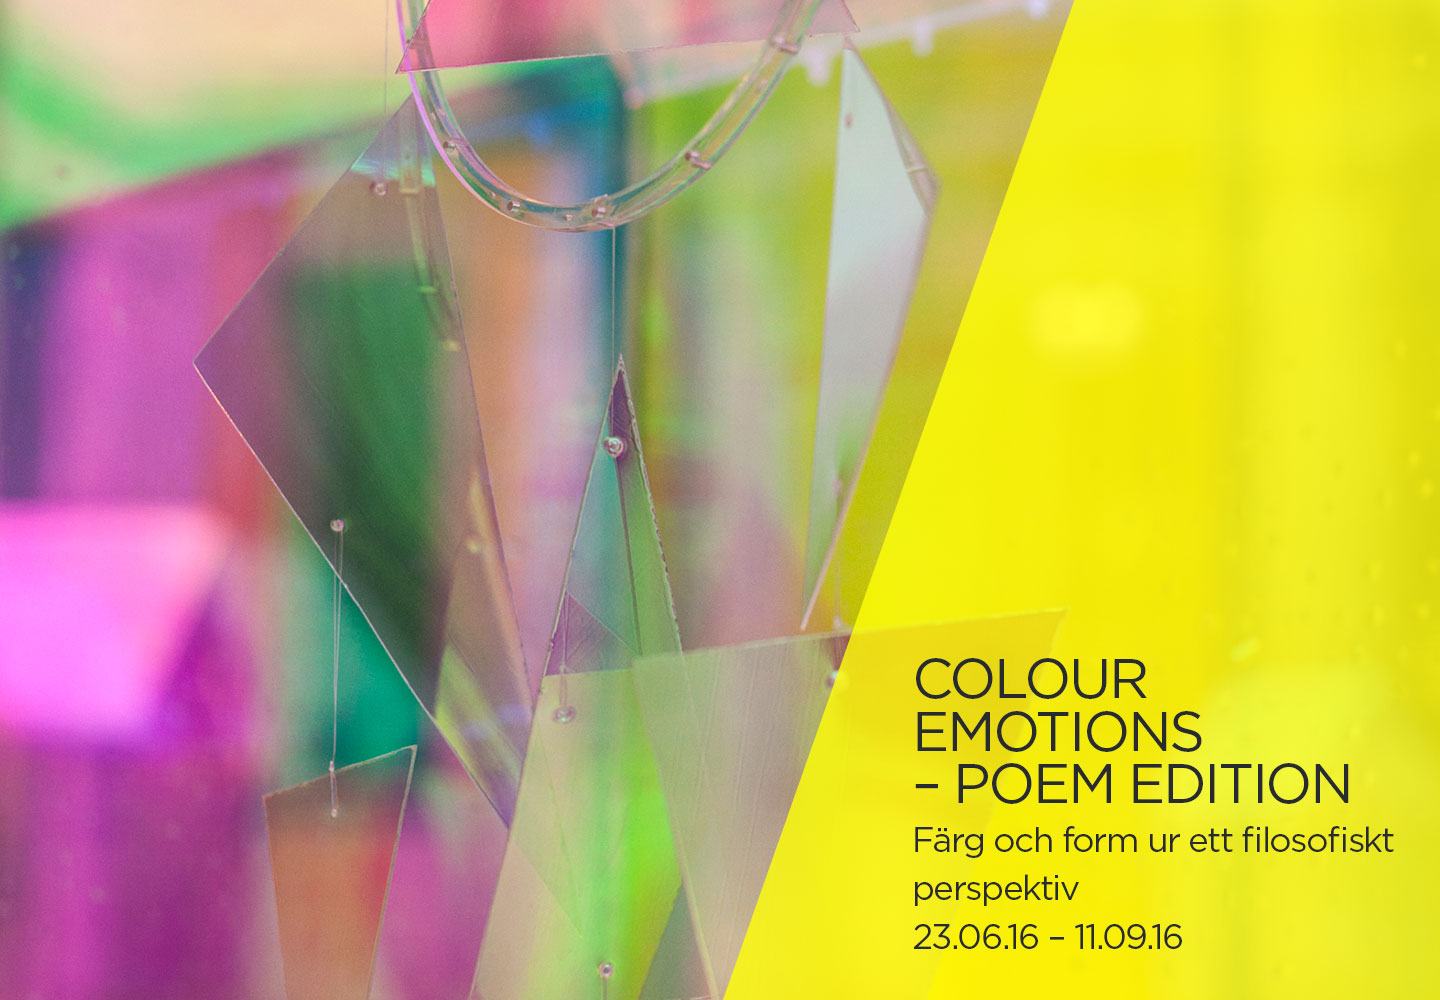 COLOUR EMOTIONS – POEM EDITION